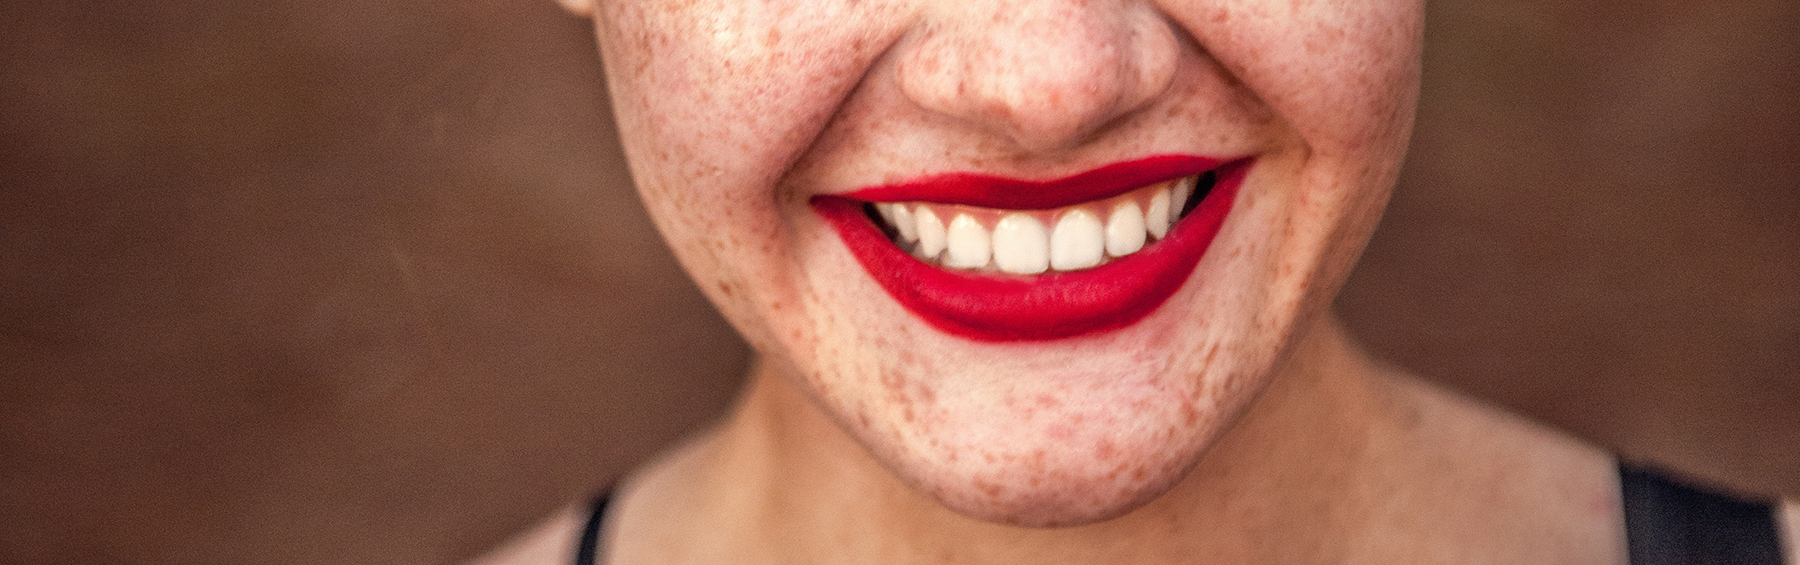 How to keep your teeth strong, even when you're grinding!